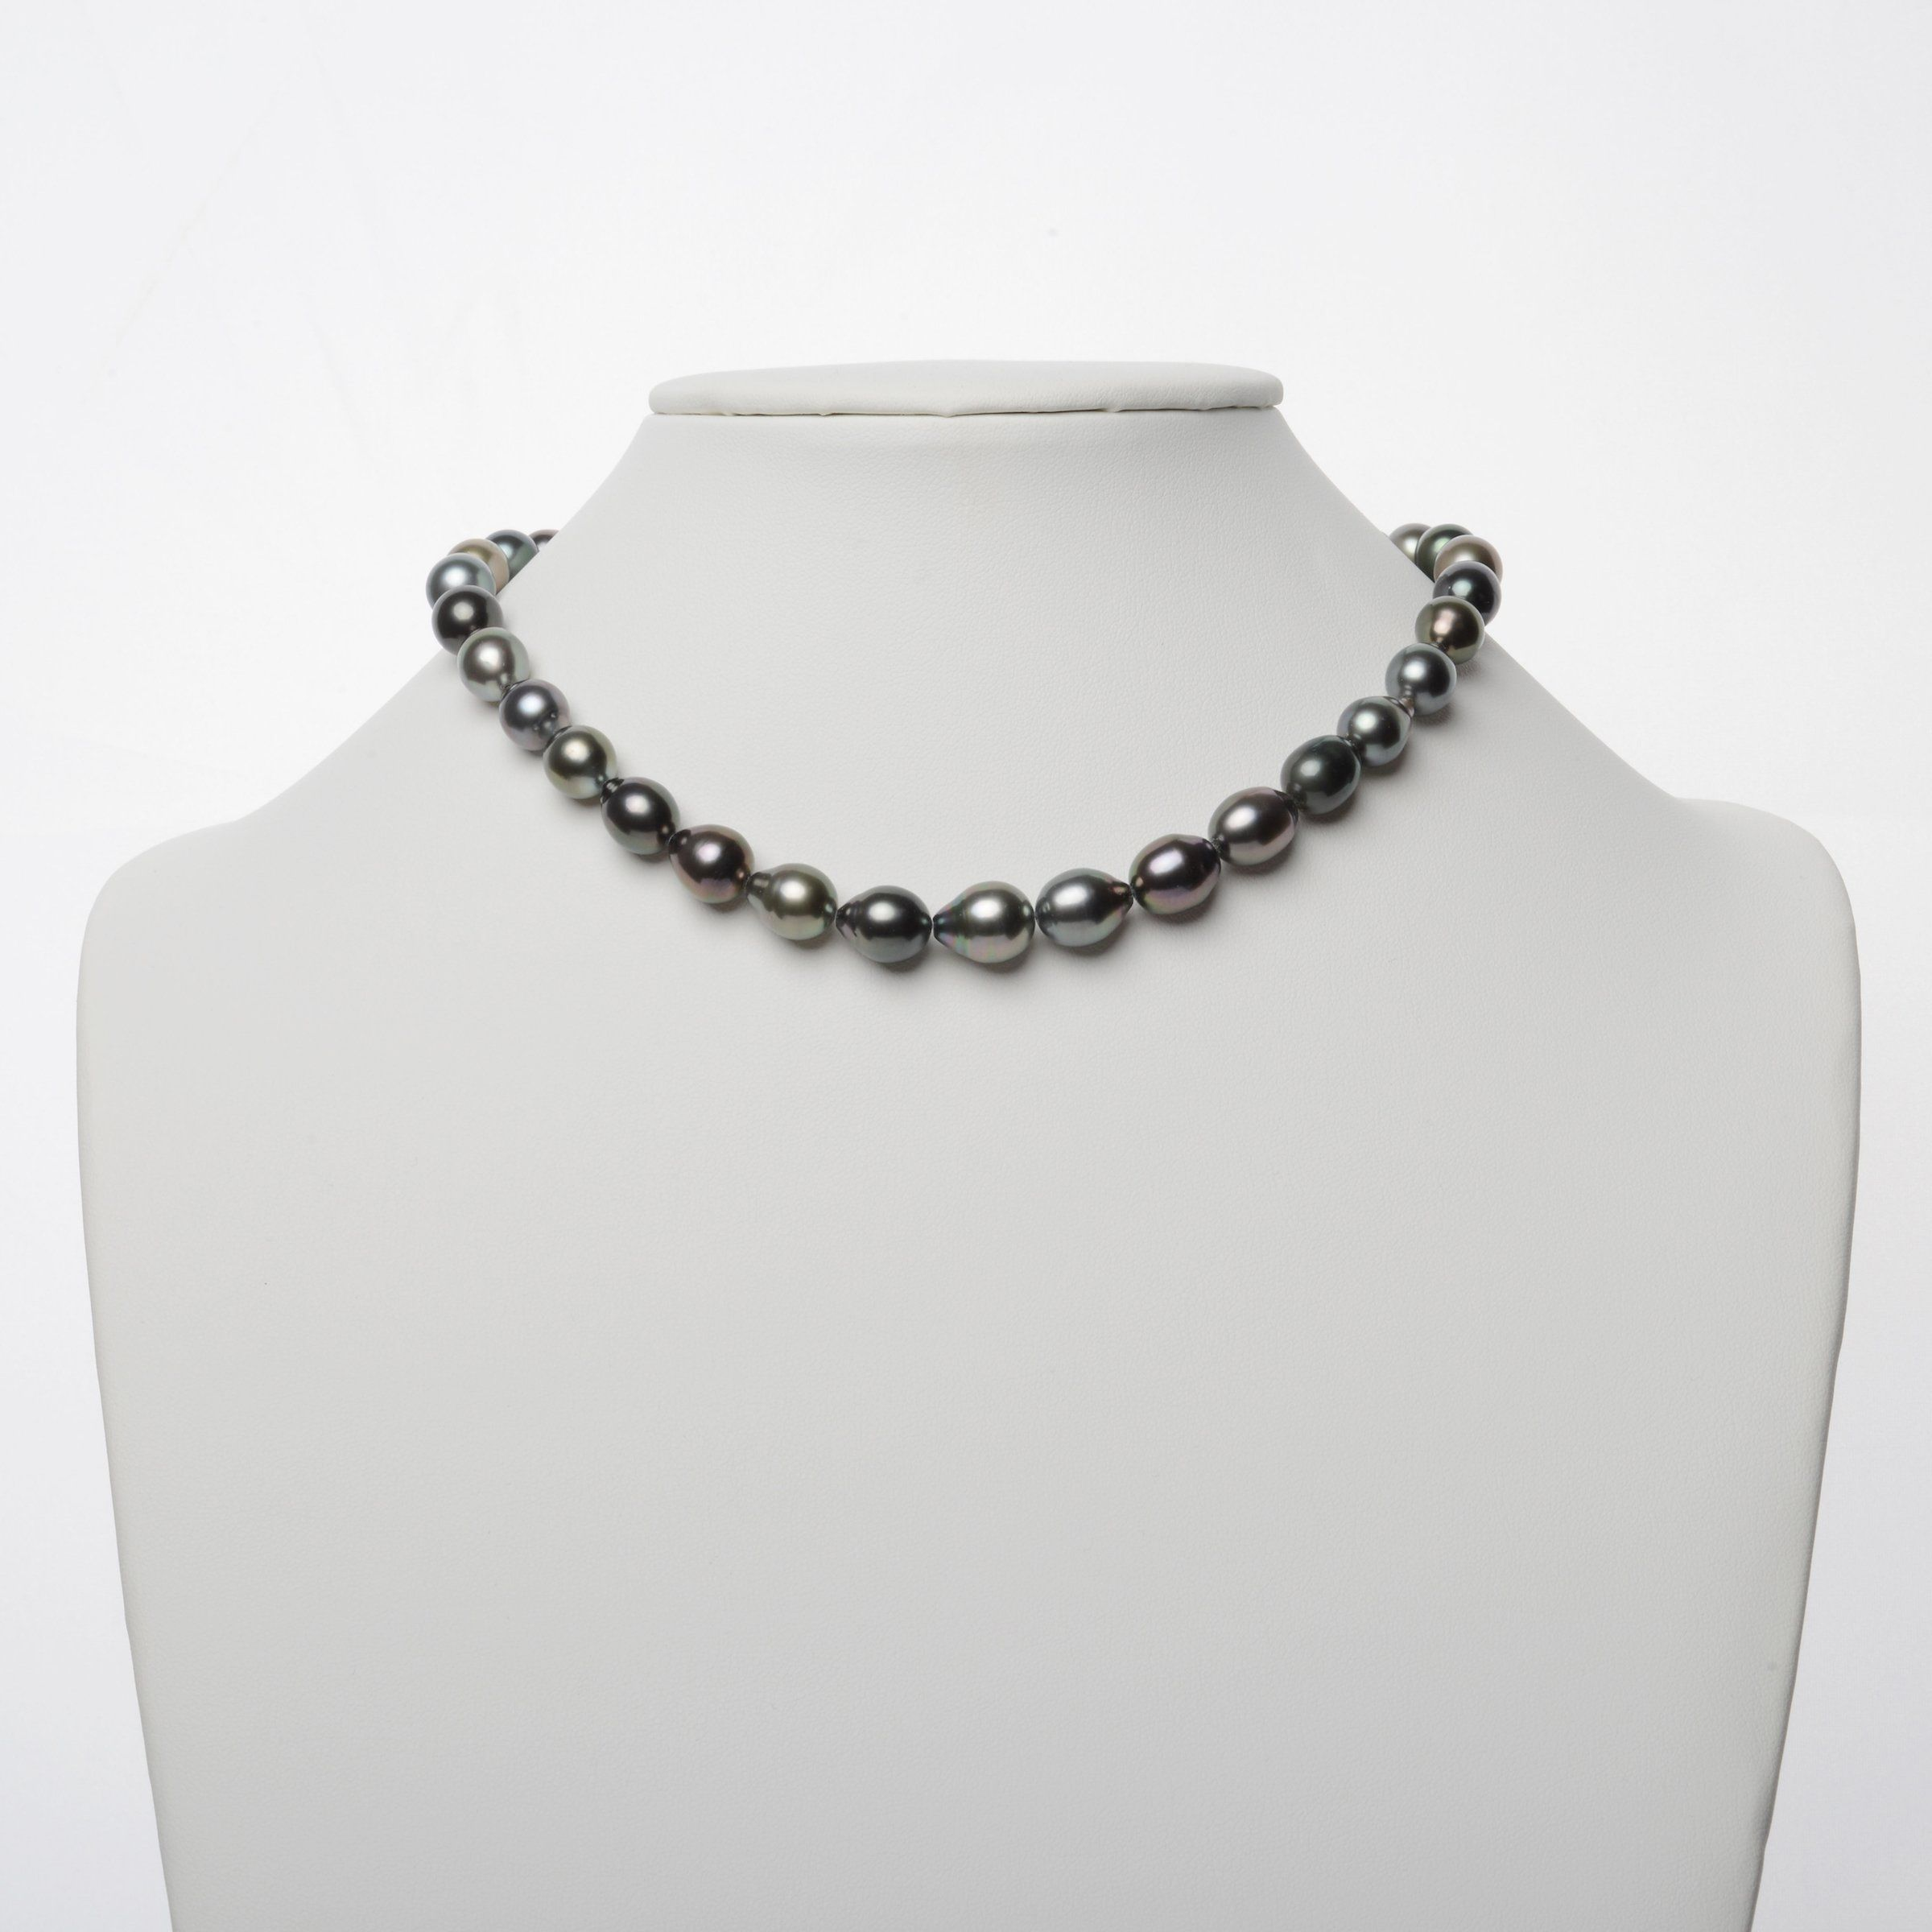 8.4-10.9 mm AAA Tahitian Drop Pearl Necklace